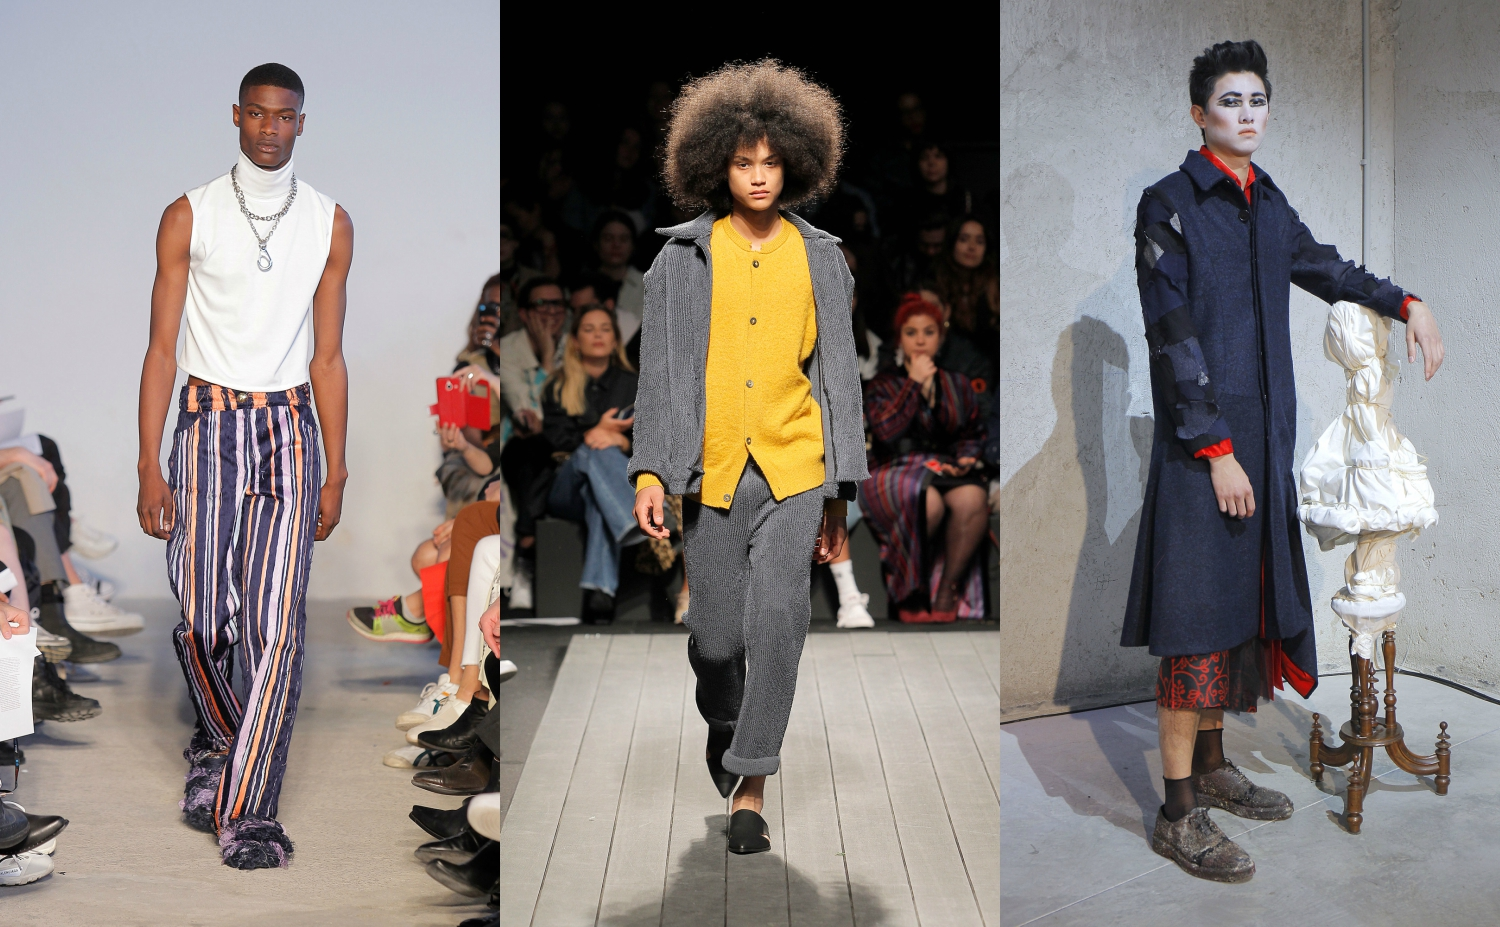 MODALISBOA AW19/20 Catchup: 3 Menswear Designers That Caught Our Attention